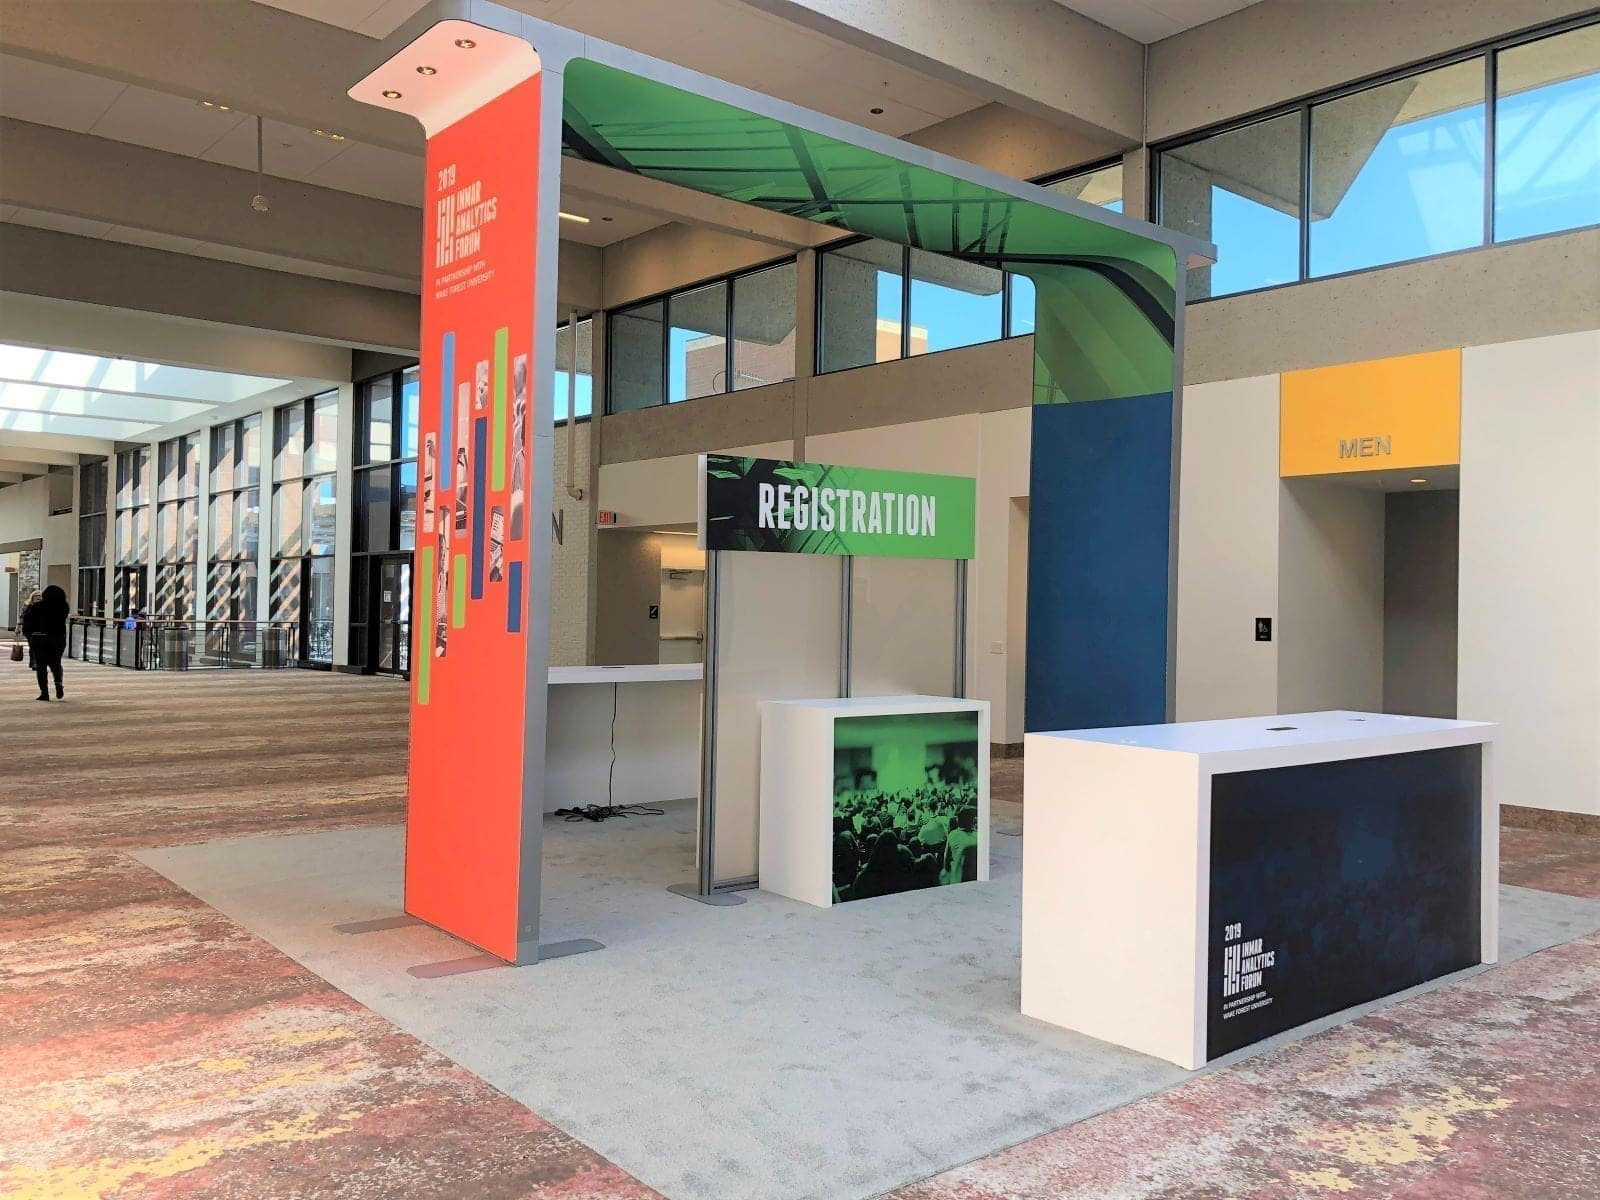 Custom designed and installed Inmar Analytics Forum event registration exhibit with archway, color graphics, and LED lighting